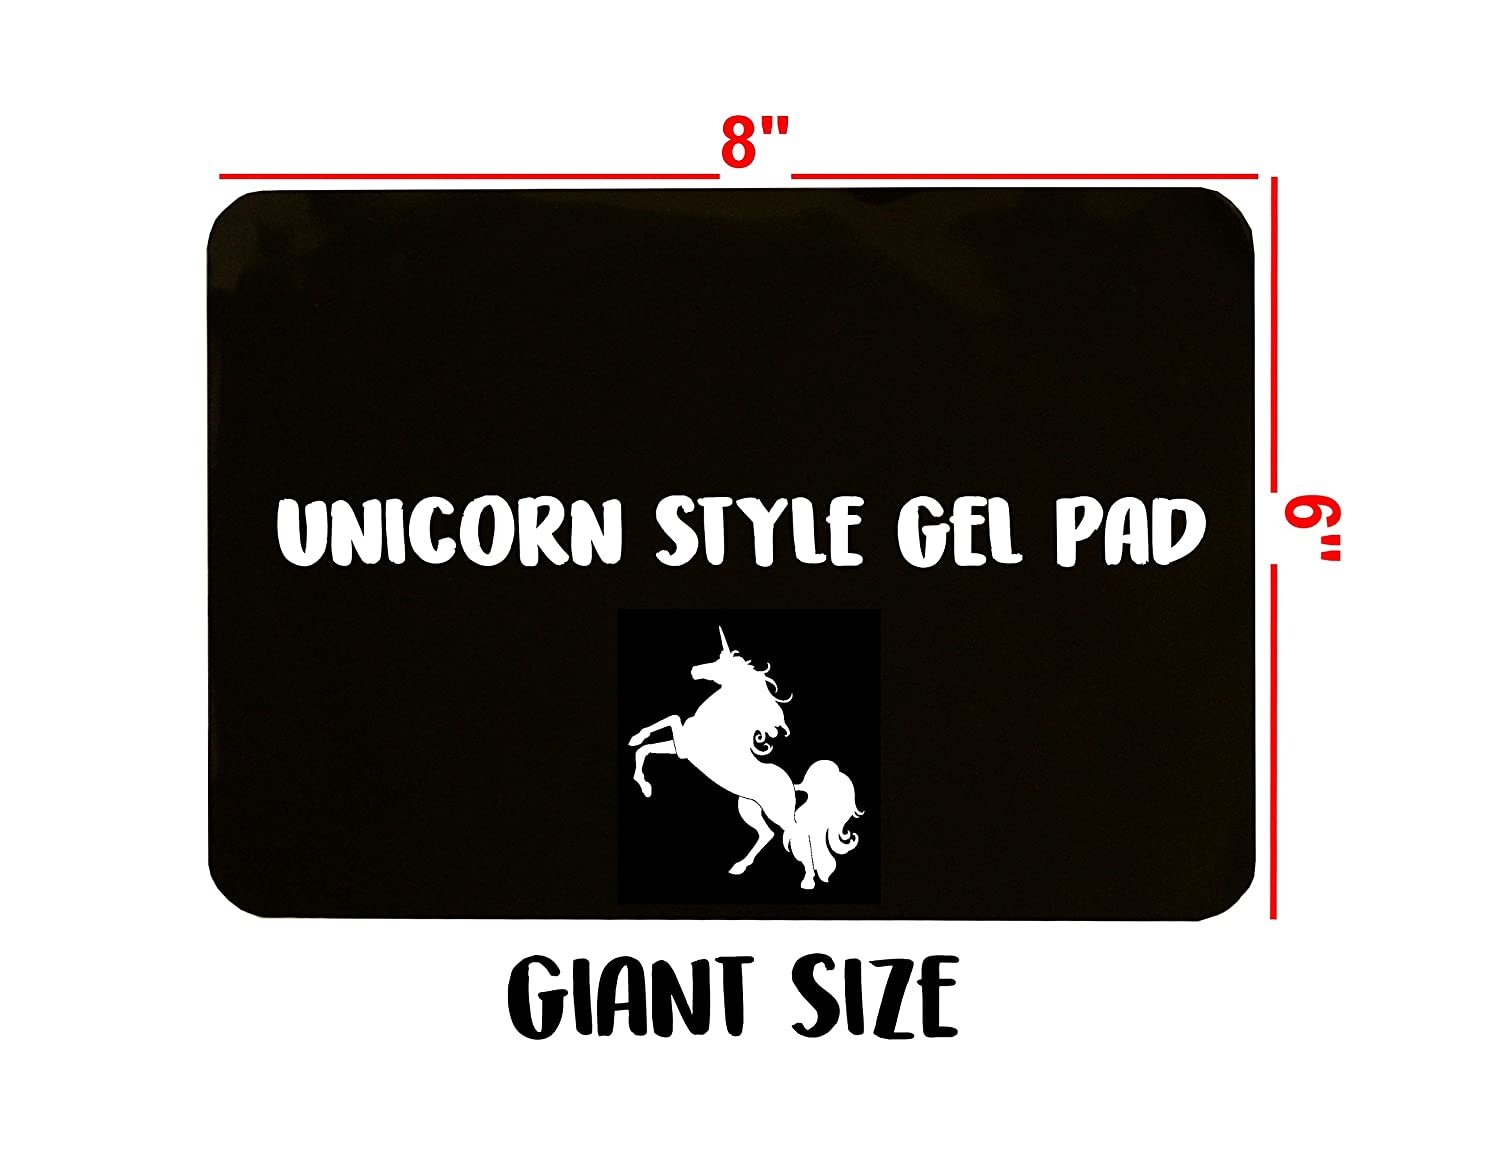 Anti-Slip Gel Pads Unicorn Style co. Fixate Sticky Cell Pads Non-Slip Gel Mat Sticky Auto Gel Holder,Can Stick to Cellphone, Pad, Keys,Glass, Mirrors, Whiteboards, Metal (Black)